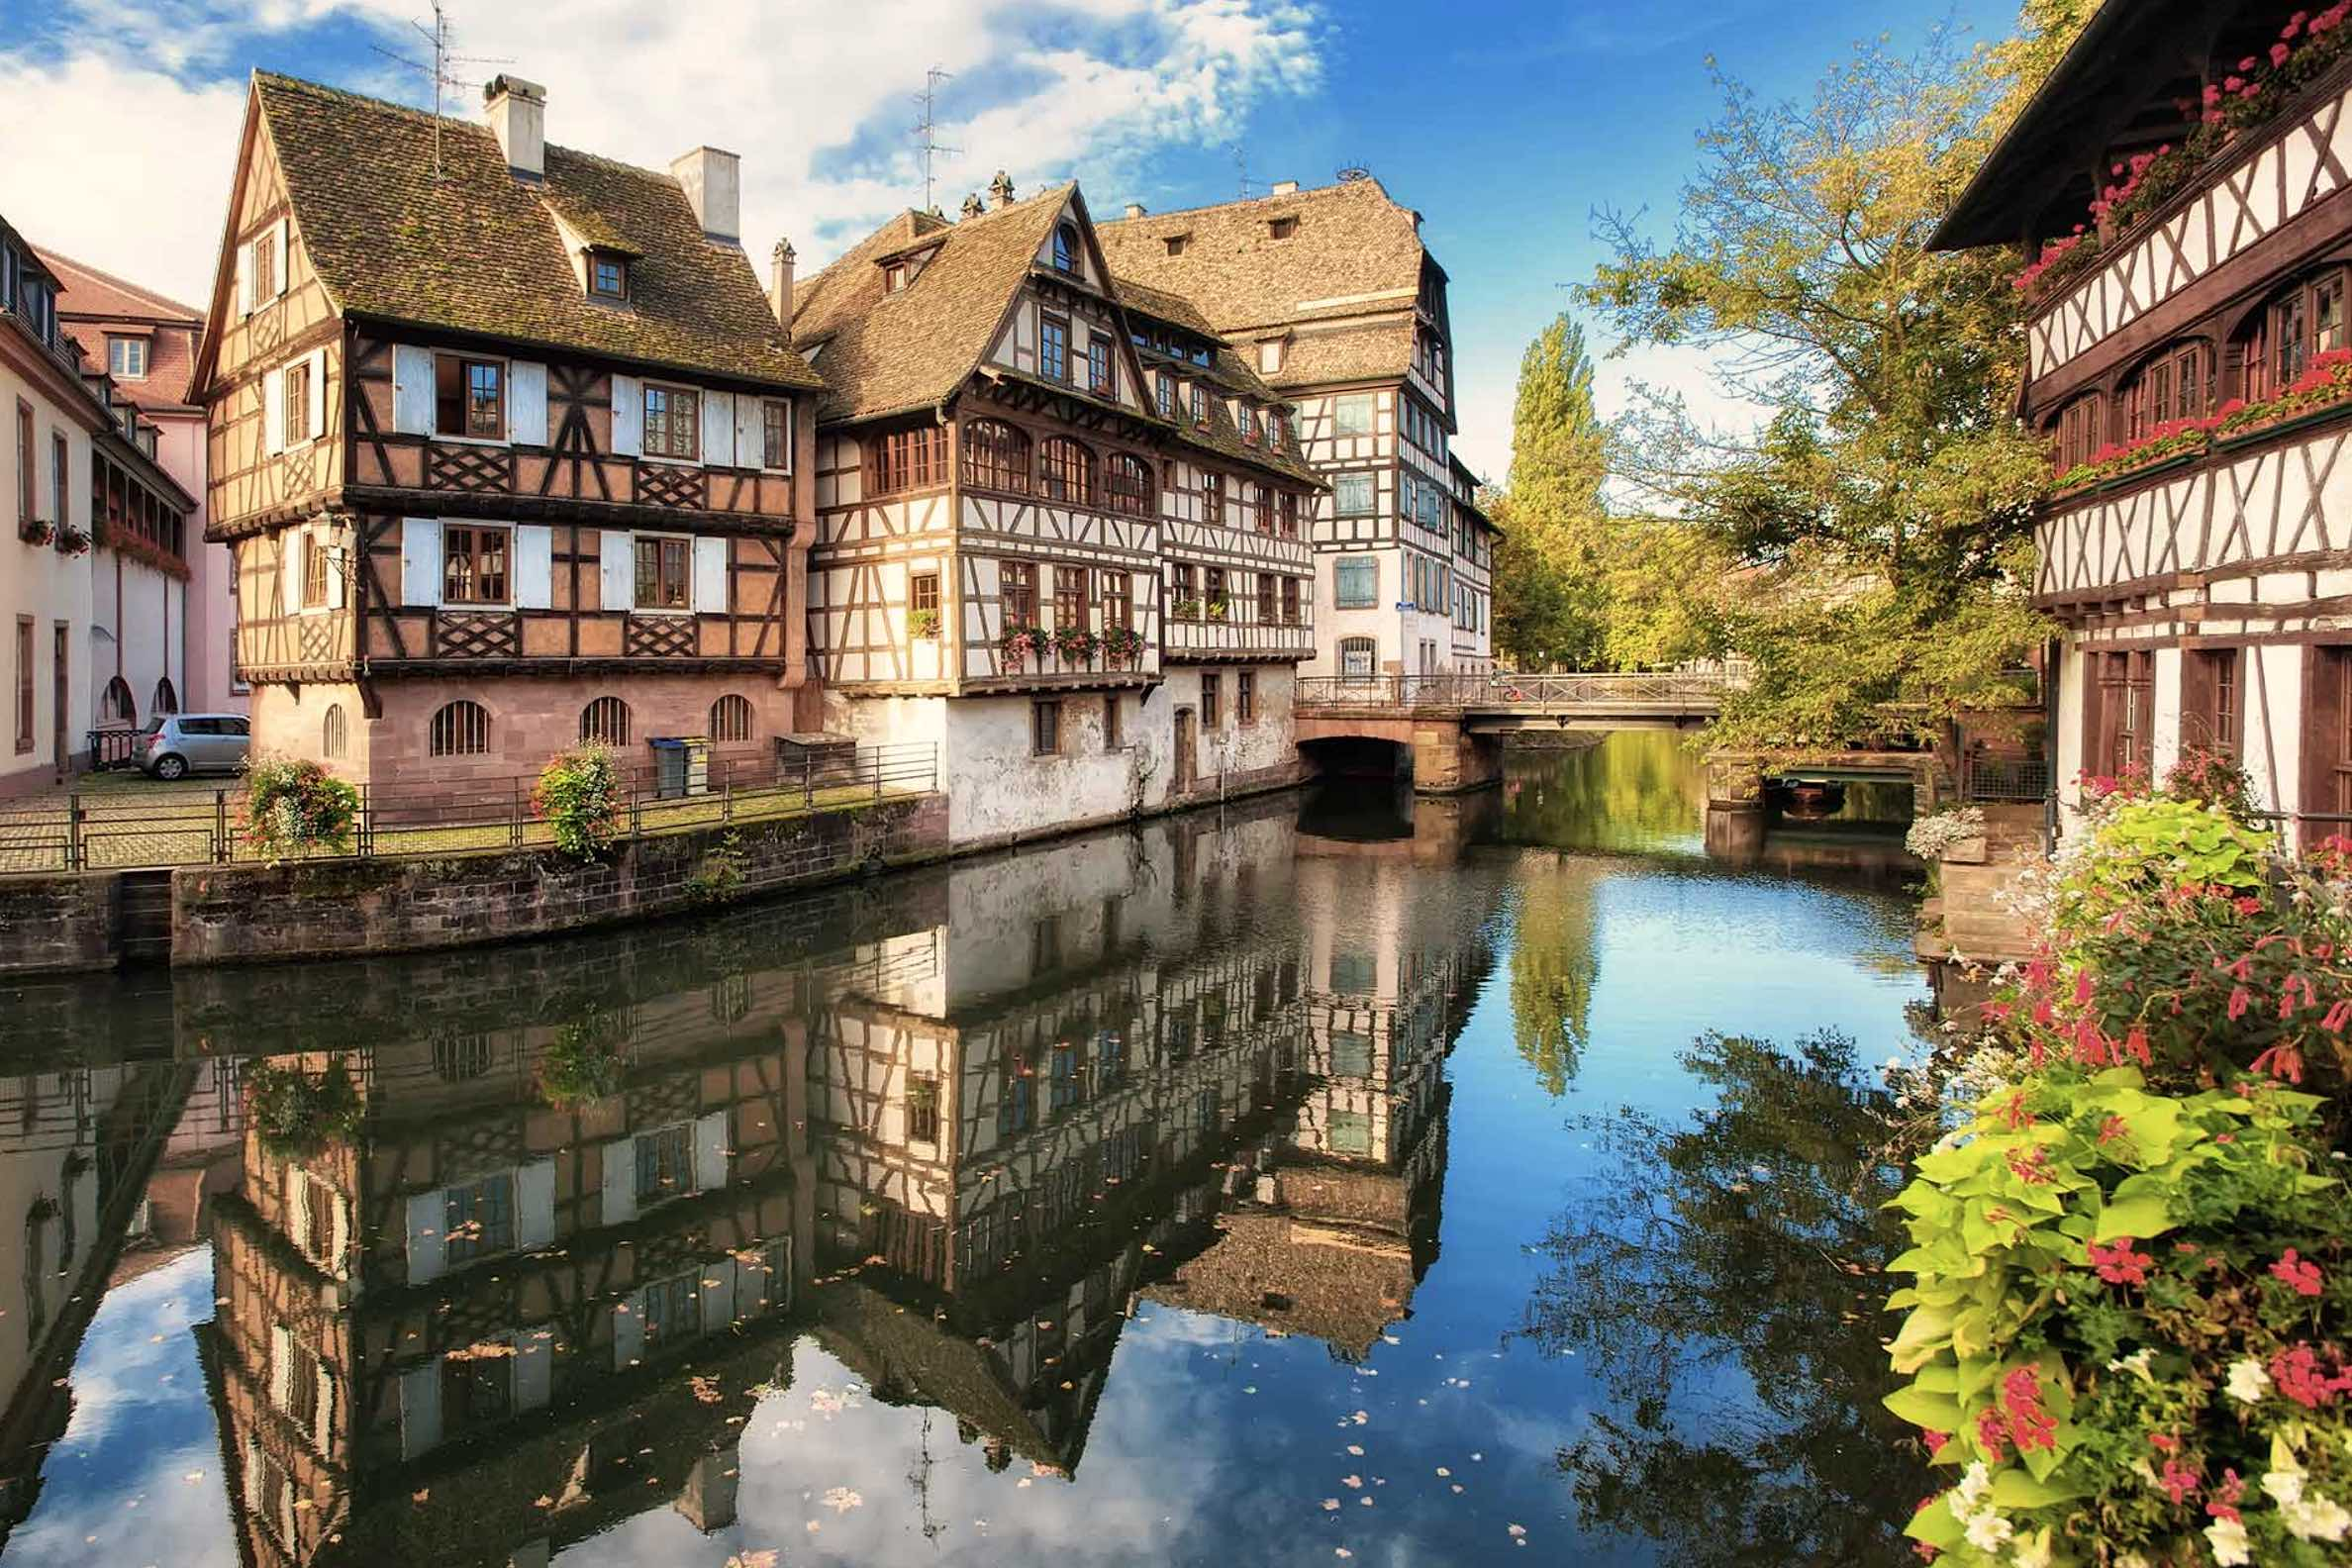 Alsace's traditional architecture consists of houses constructed with walls in timber framing and cob, and roofing in flat tiles